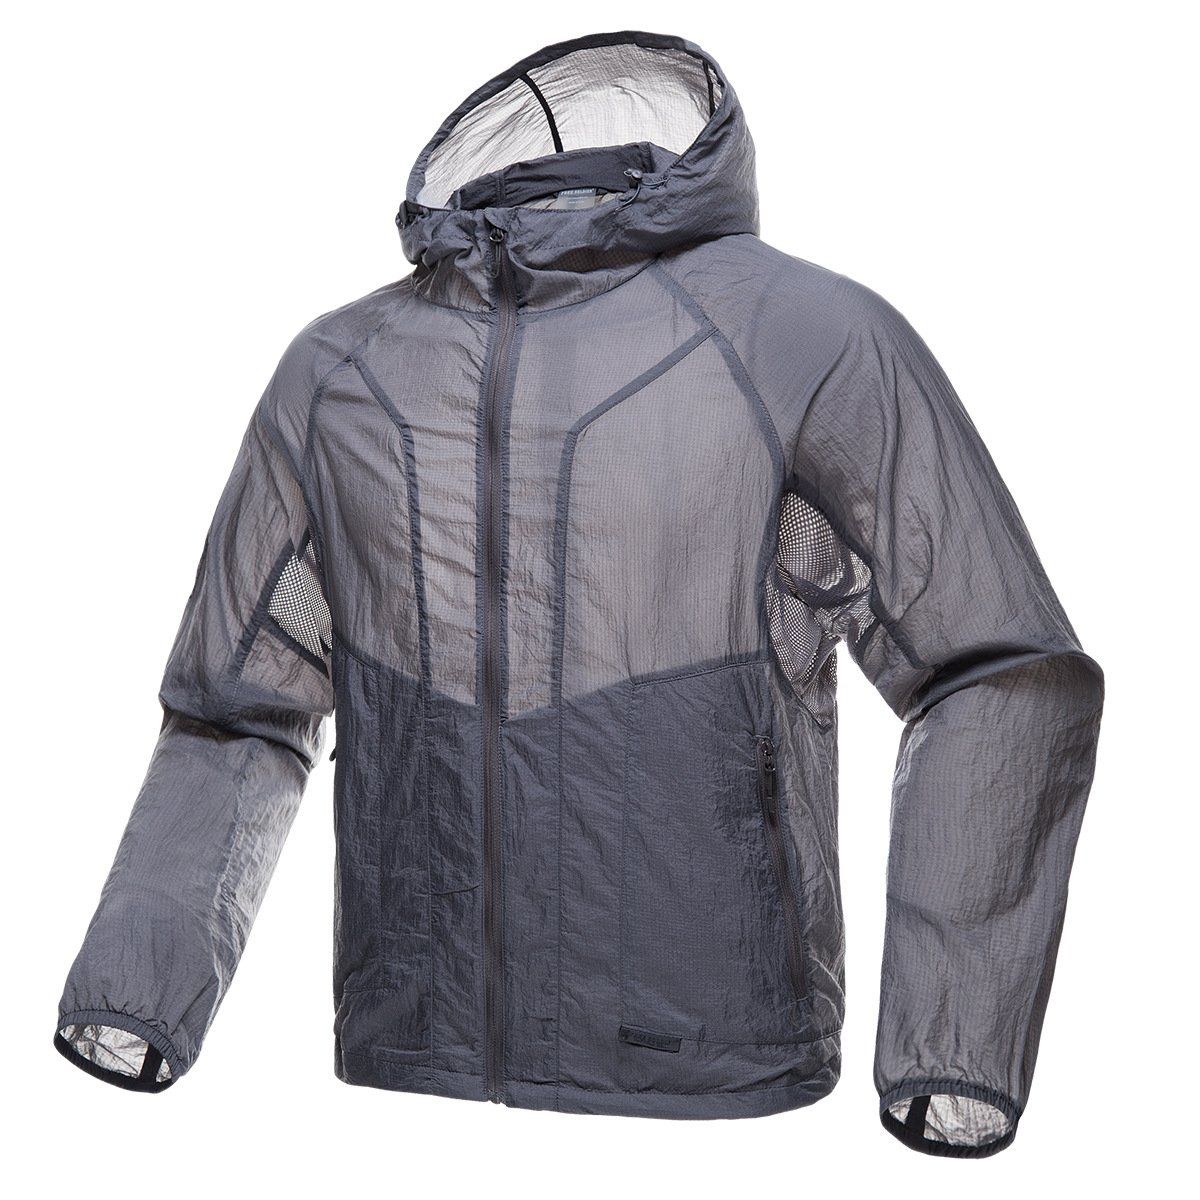 FREE SOLDIER Men's Tactical Jacket Lightweight Wind Breaker Jacket Water-Resistant Breathable Hiking Cycling Jacket (Gray, XXL) by FREE SOLDIER